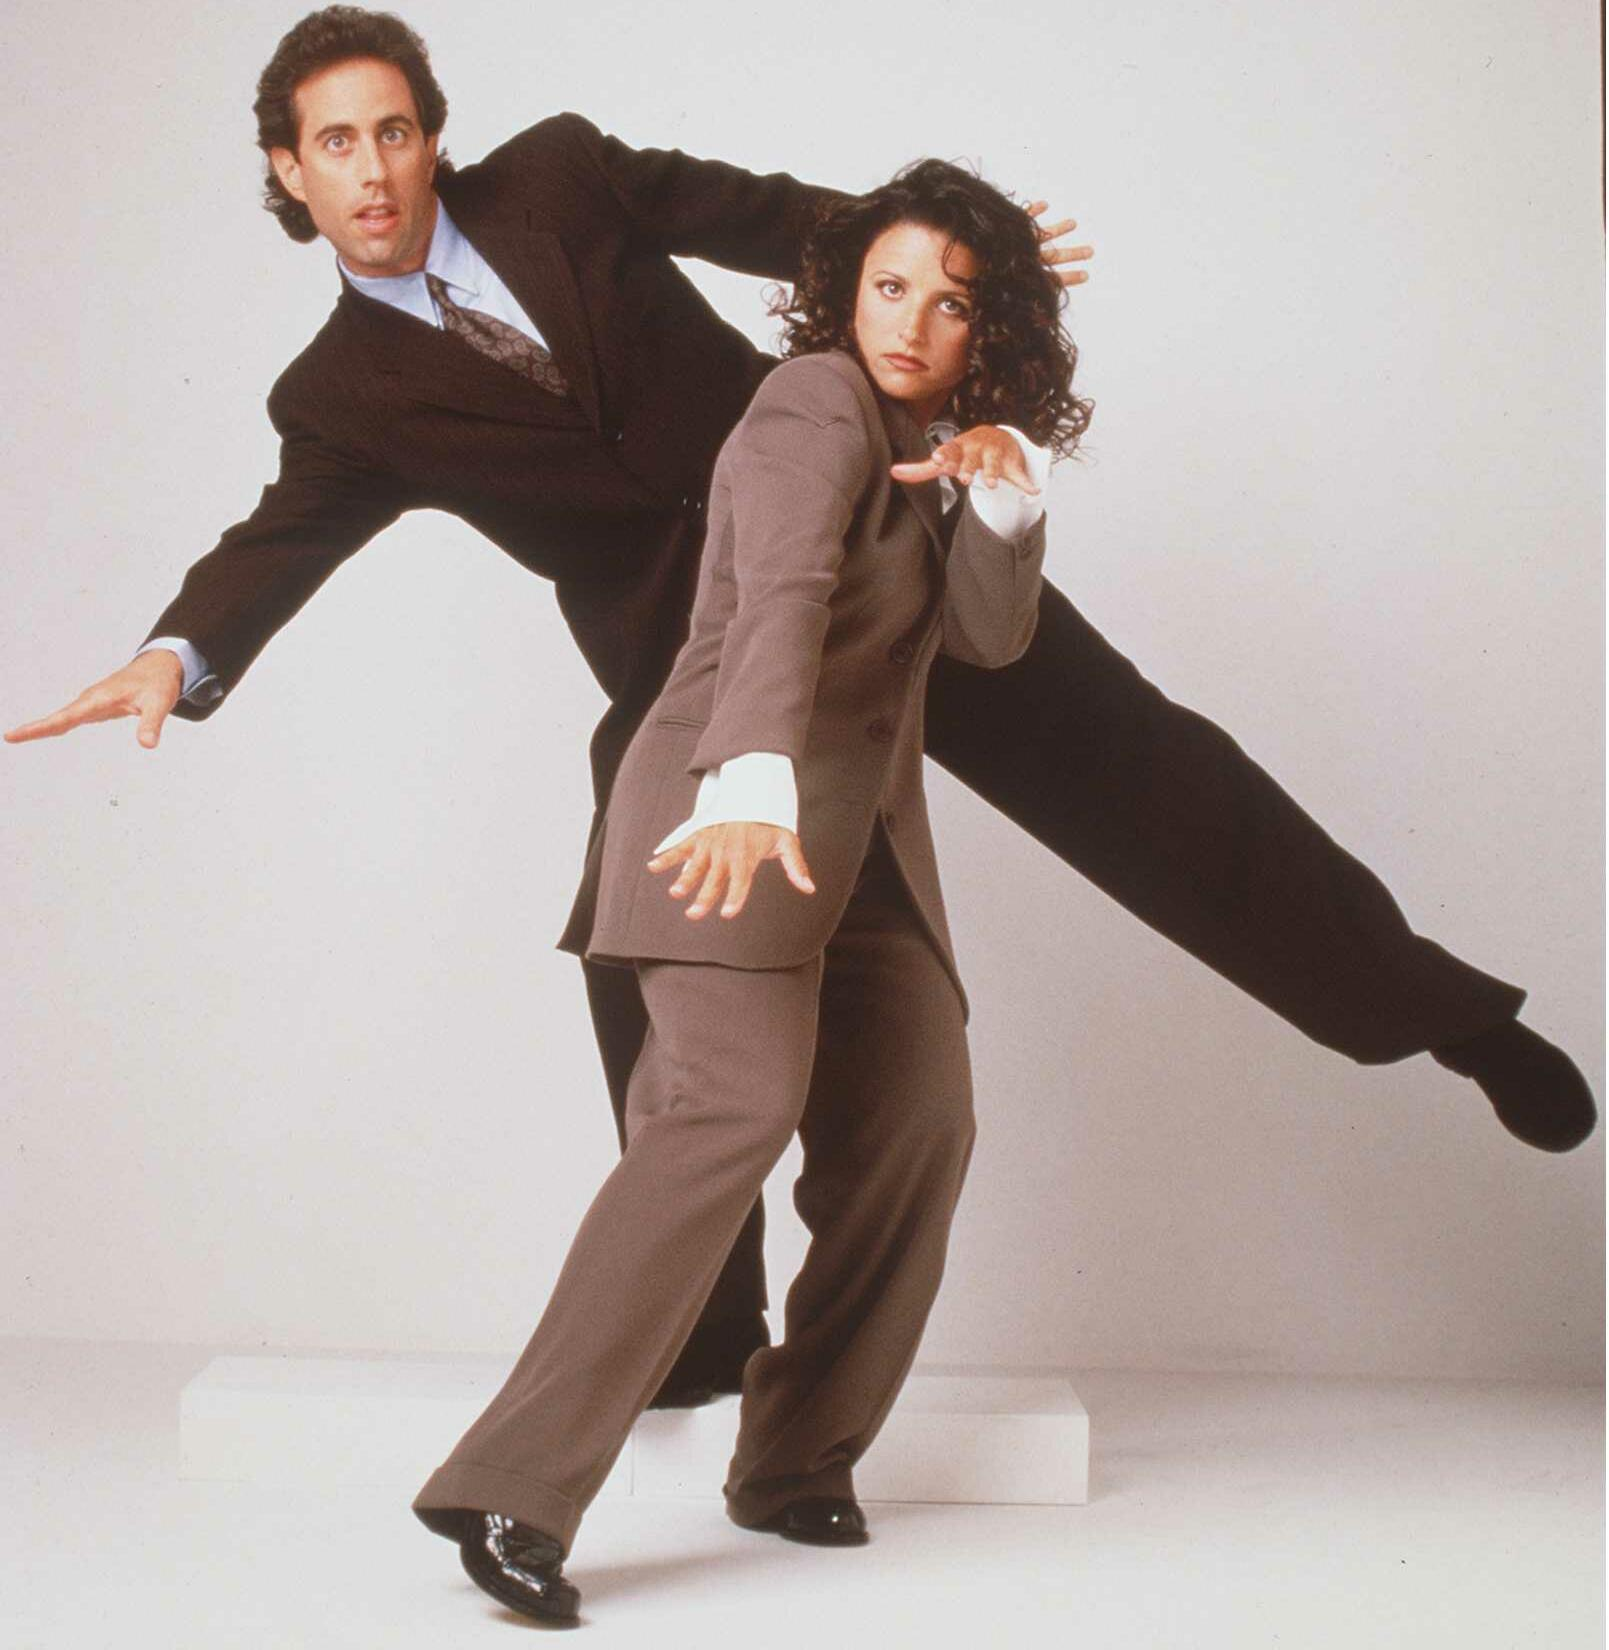 seinfeld jerry and elaine relationship quizzes